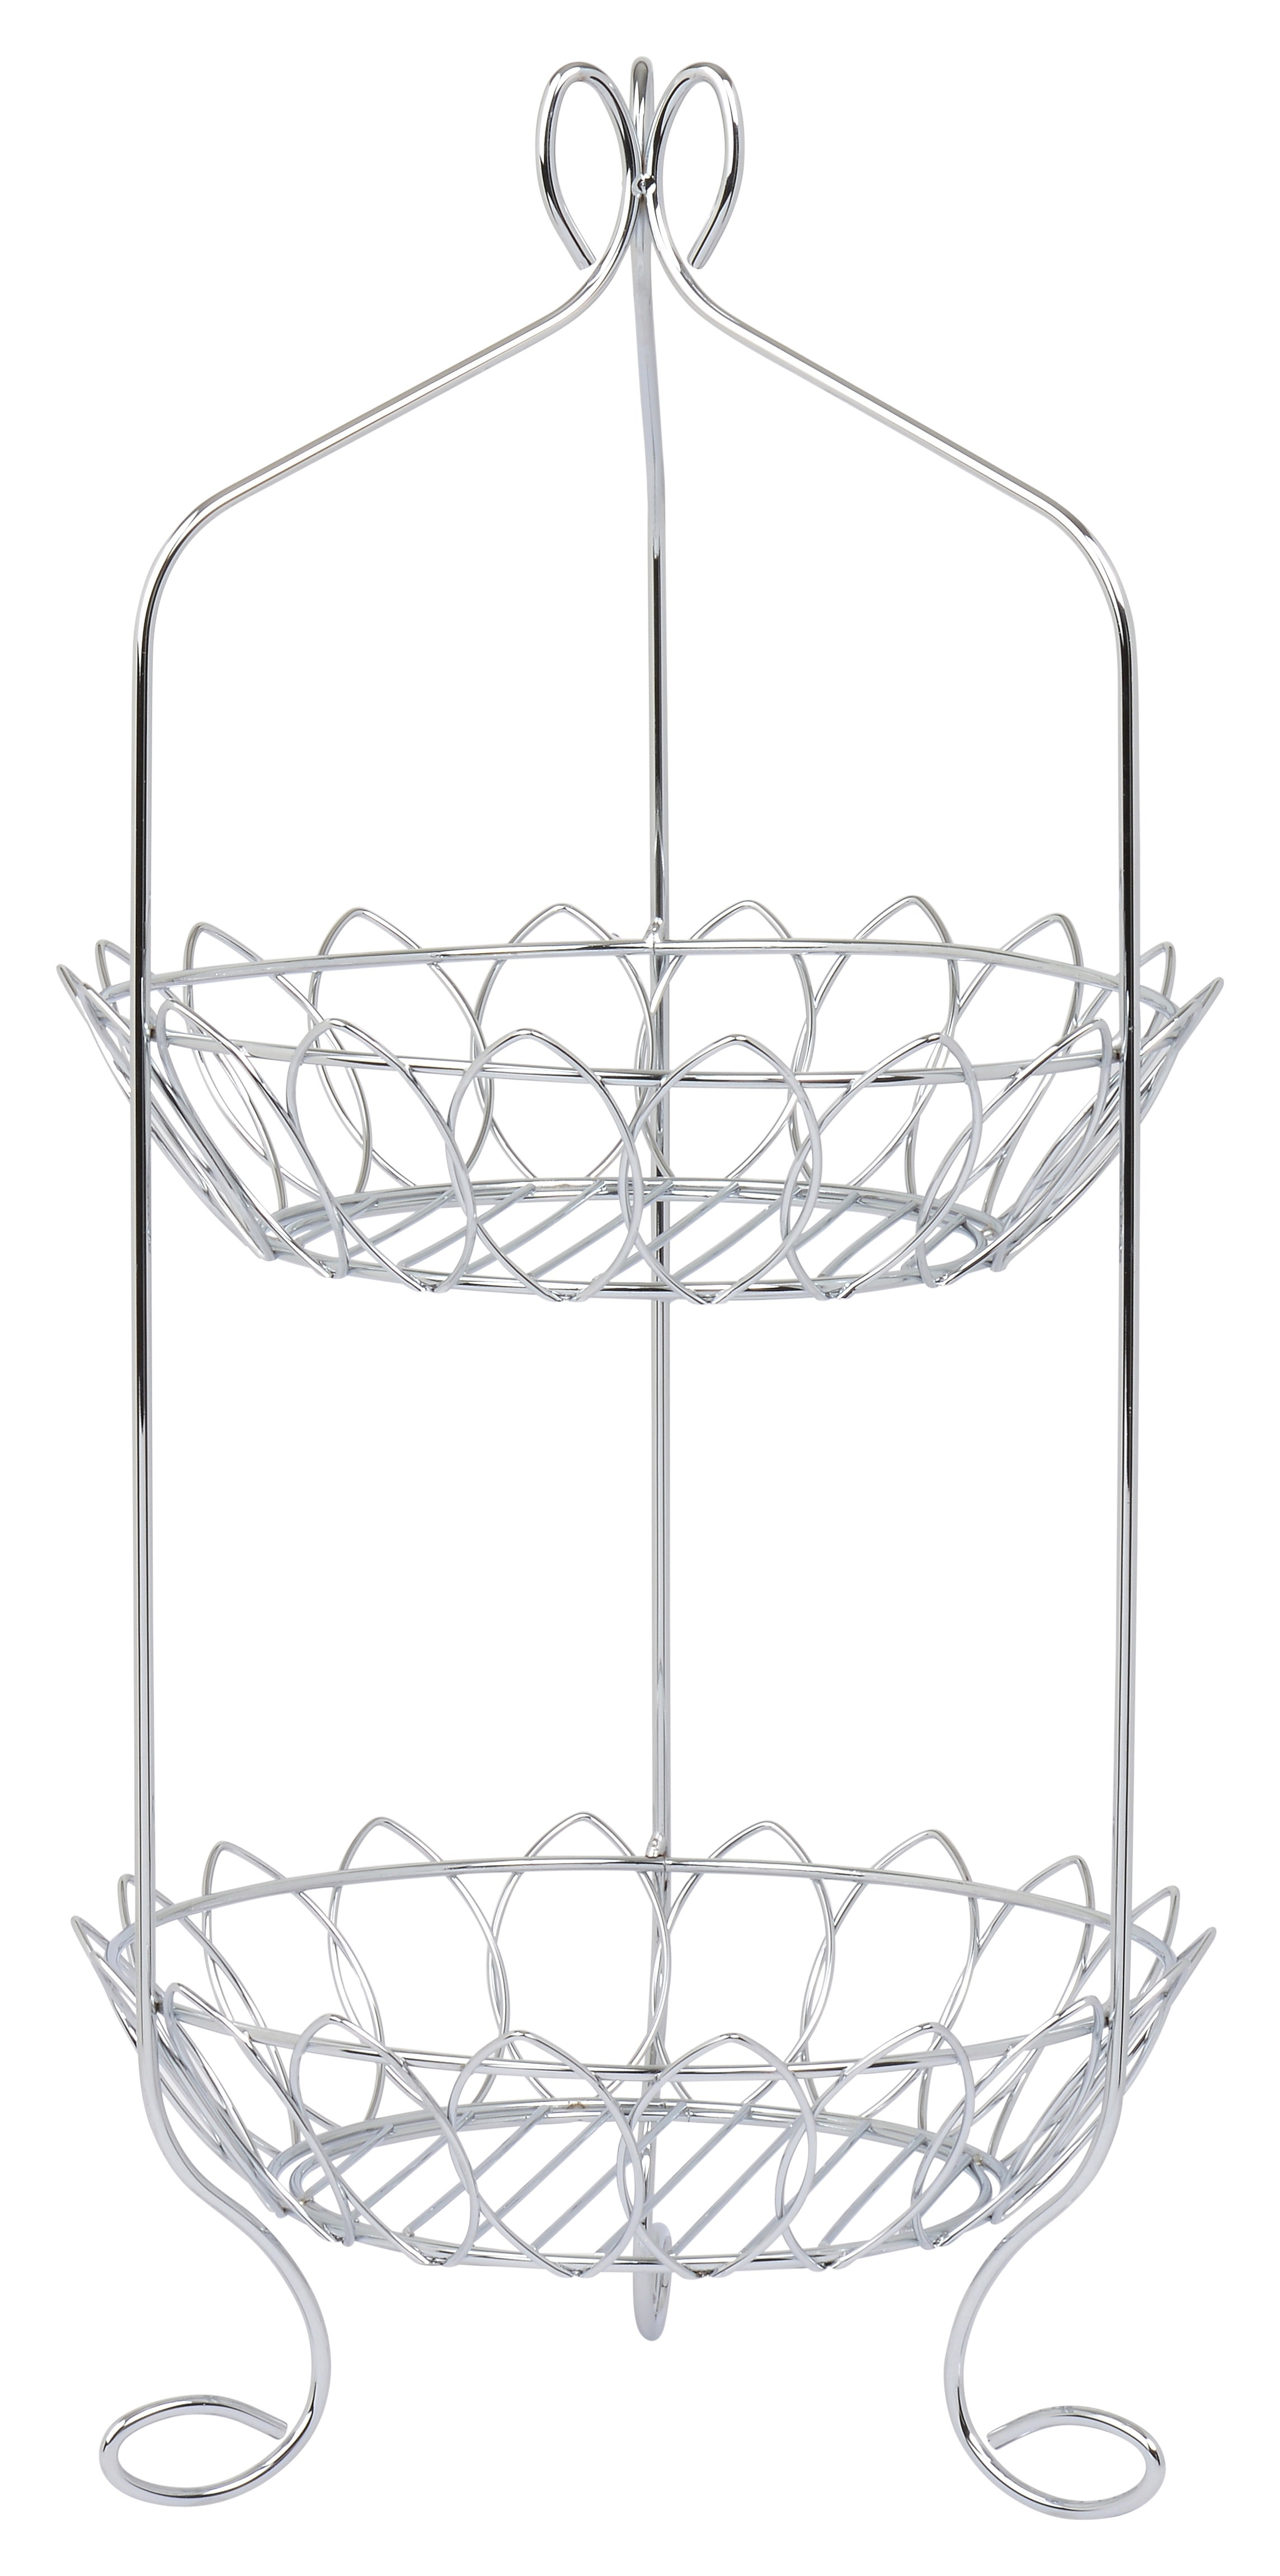 2 Tier Basket - High Quality Stainless Steel with Shiny Chrome Polish